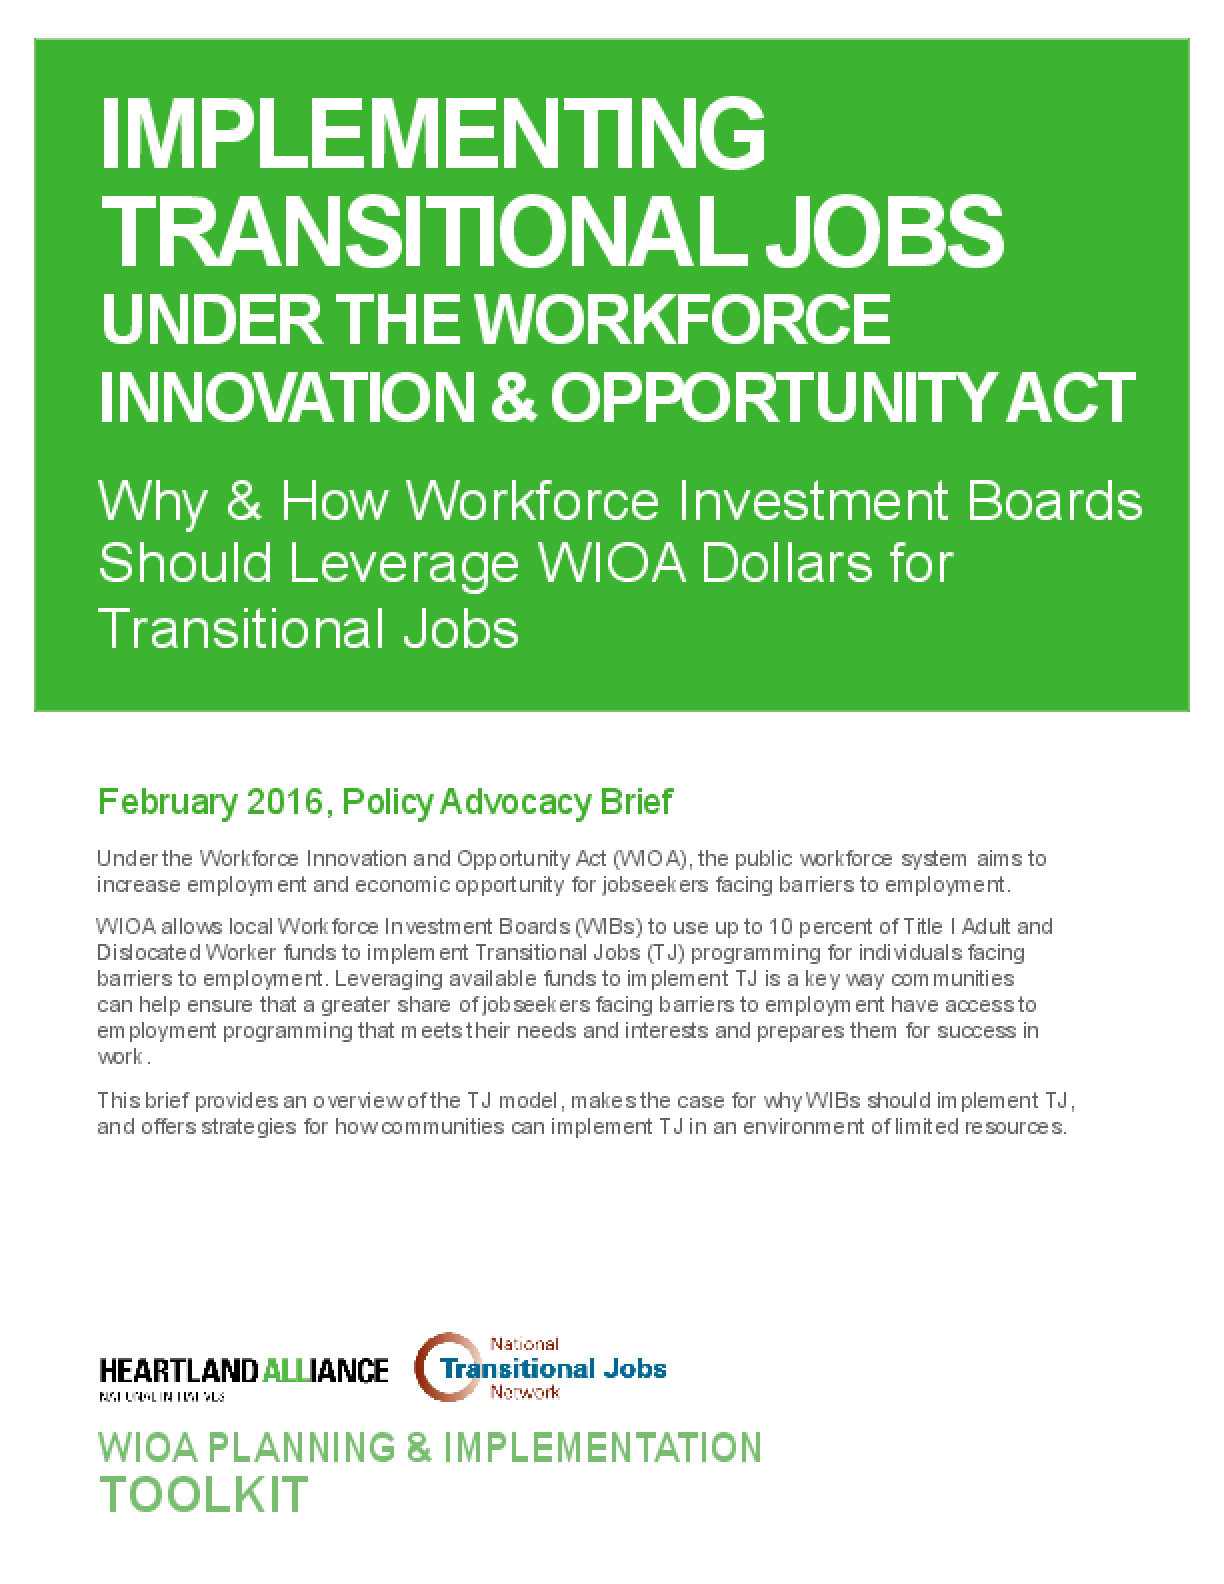 Implementing Transitional Jobs Under the Workforce Innovation and Opportunity Act: Why and How Workforce Boards Should Leverage WIOA Dollars for Transitional Jobs